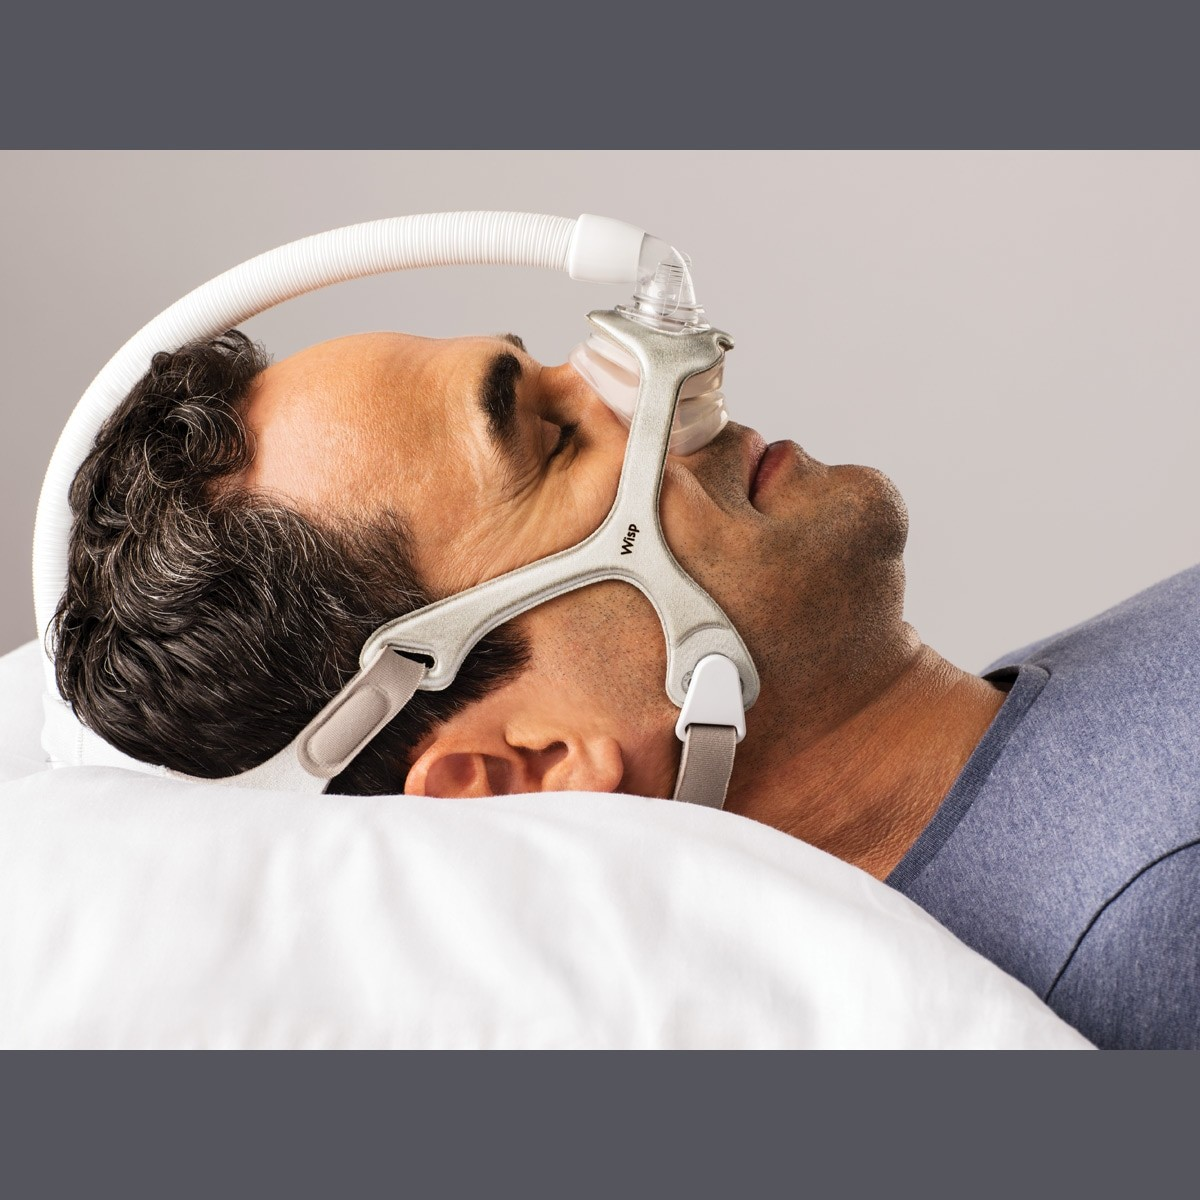 Man sleeping with a Wisp Nasal CPAP Mask with Headgear